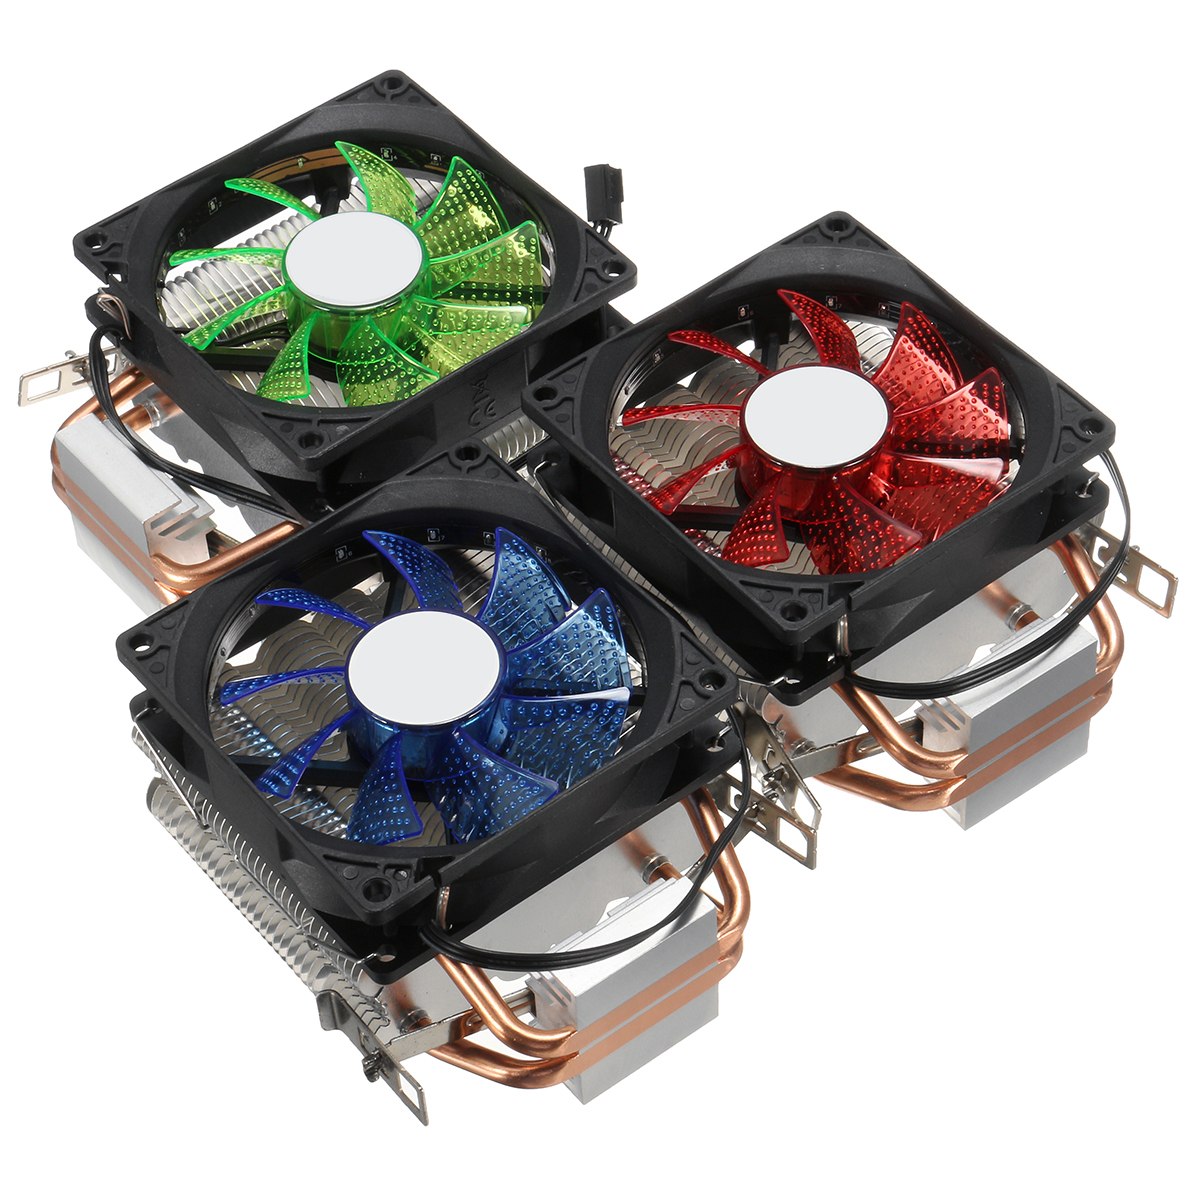 9cm LED 3 Pin CPU Cooling Fan Cooler Heatsink For Intel LAG/1155/1156 AMD  754/AM2/AM2+AM3/FM1